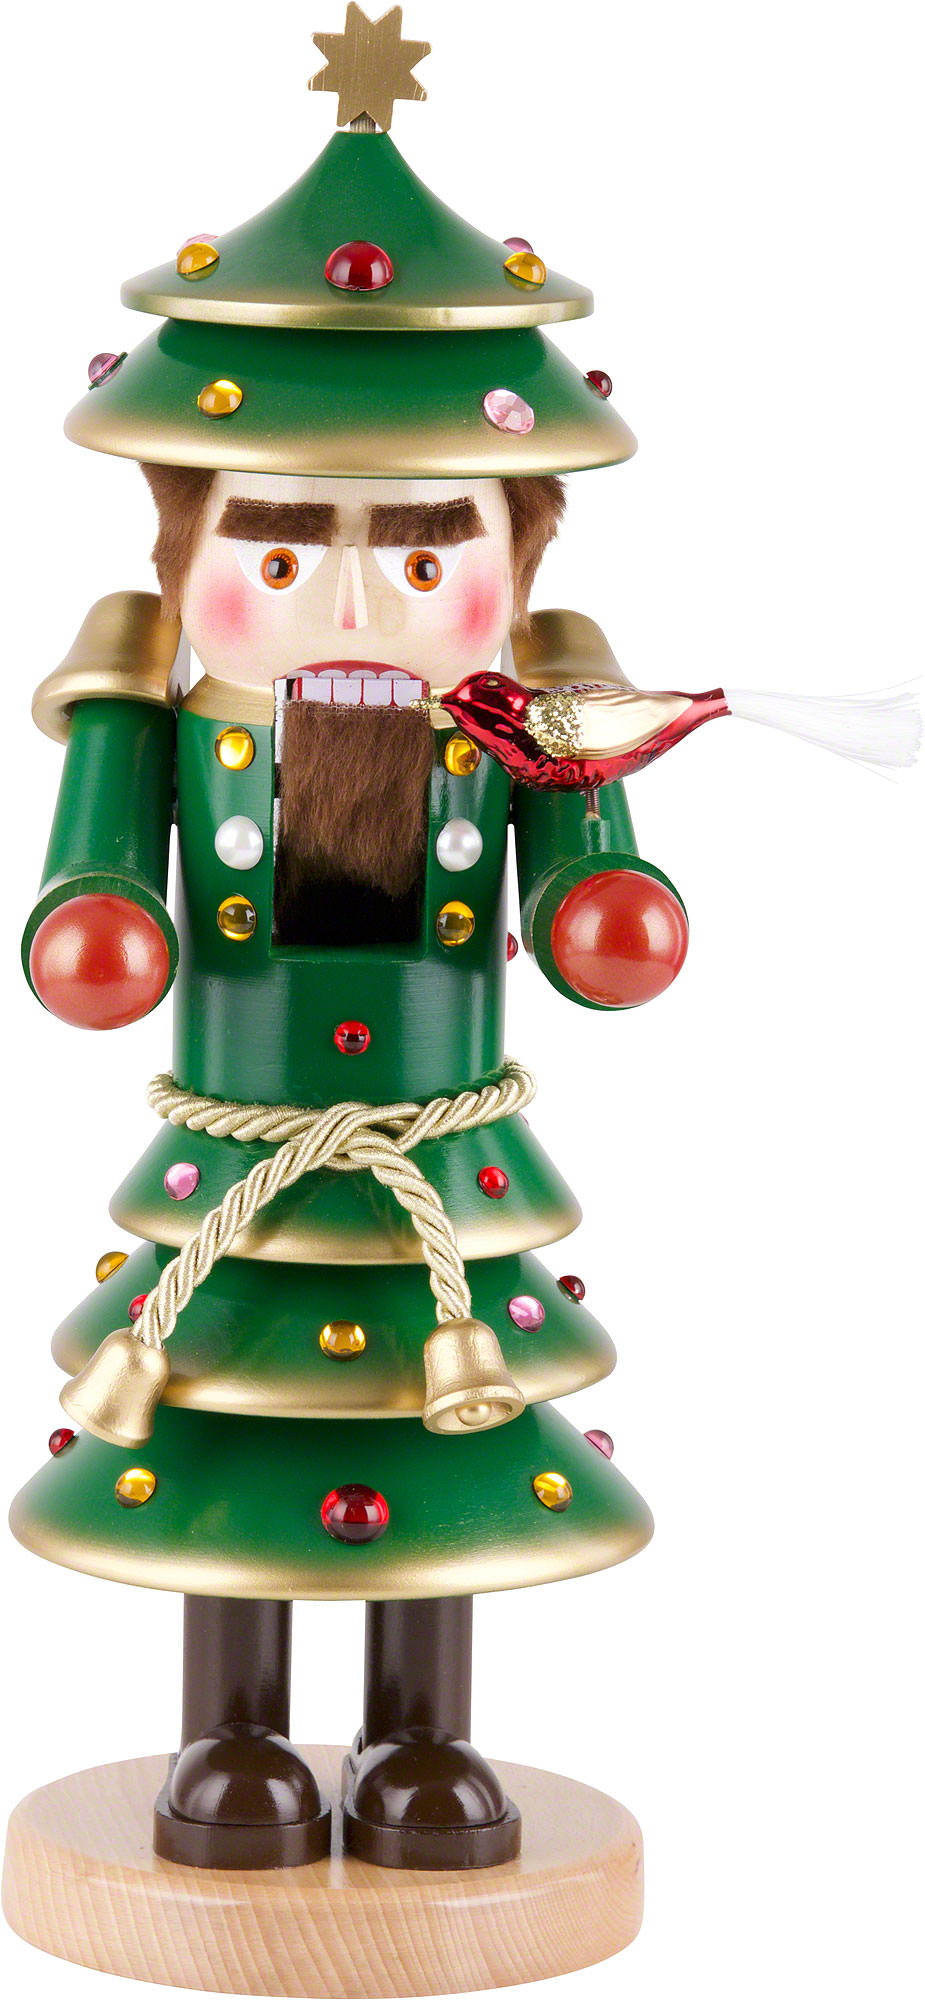 nutcracker christmas tree 40 cm 16 inch - Nutcracker Christmas Decorations